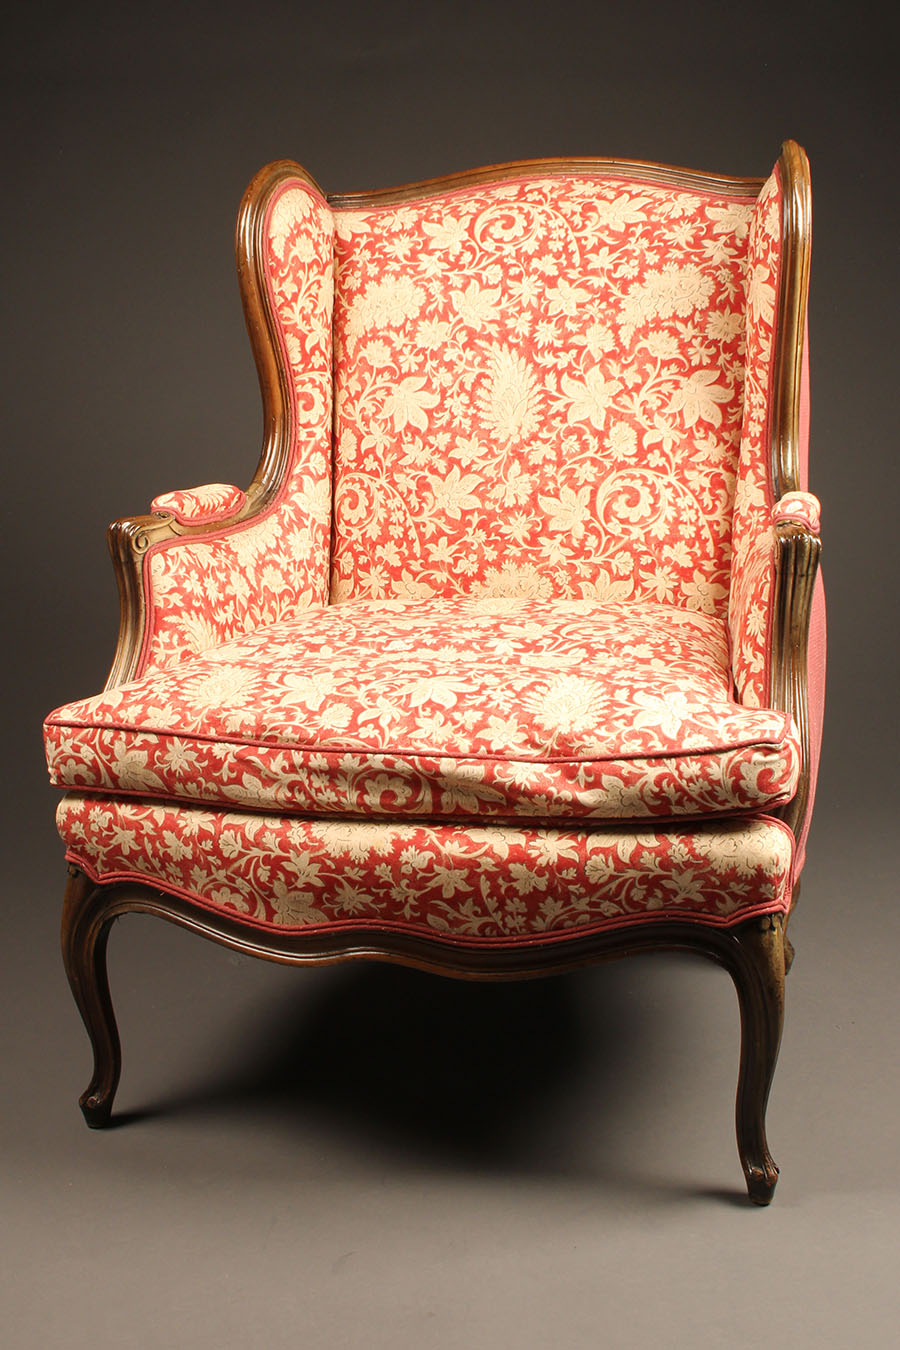 A5603B Chair Armchair Louis Xv French